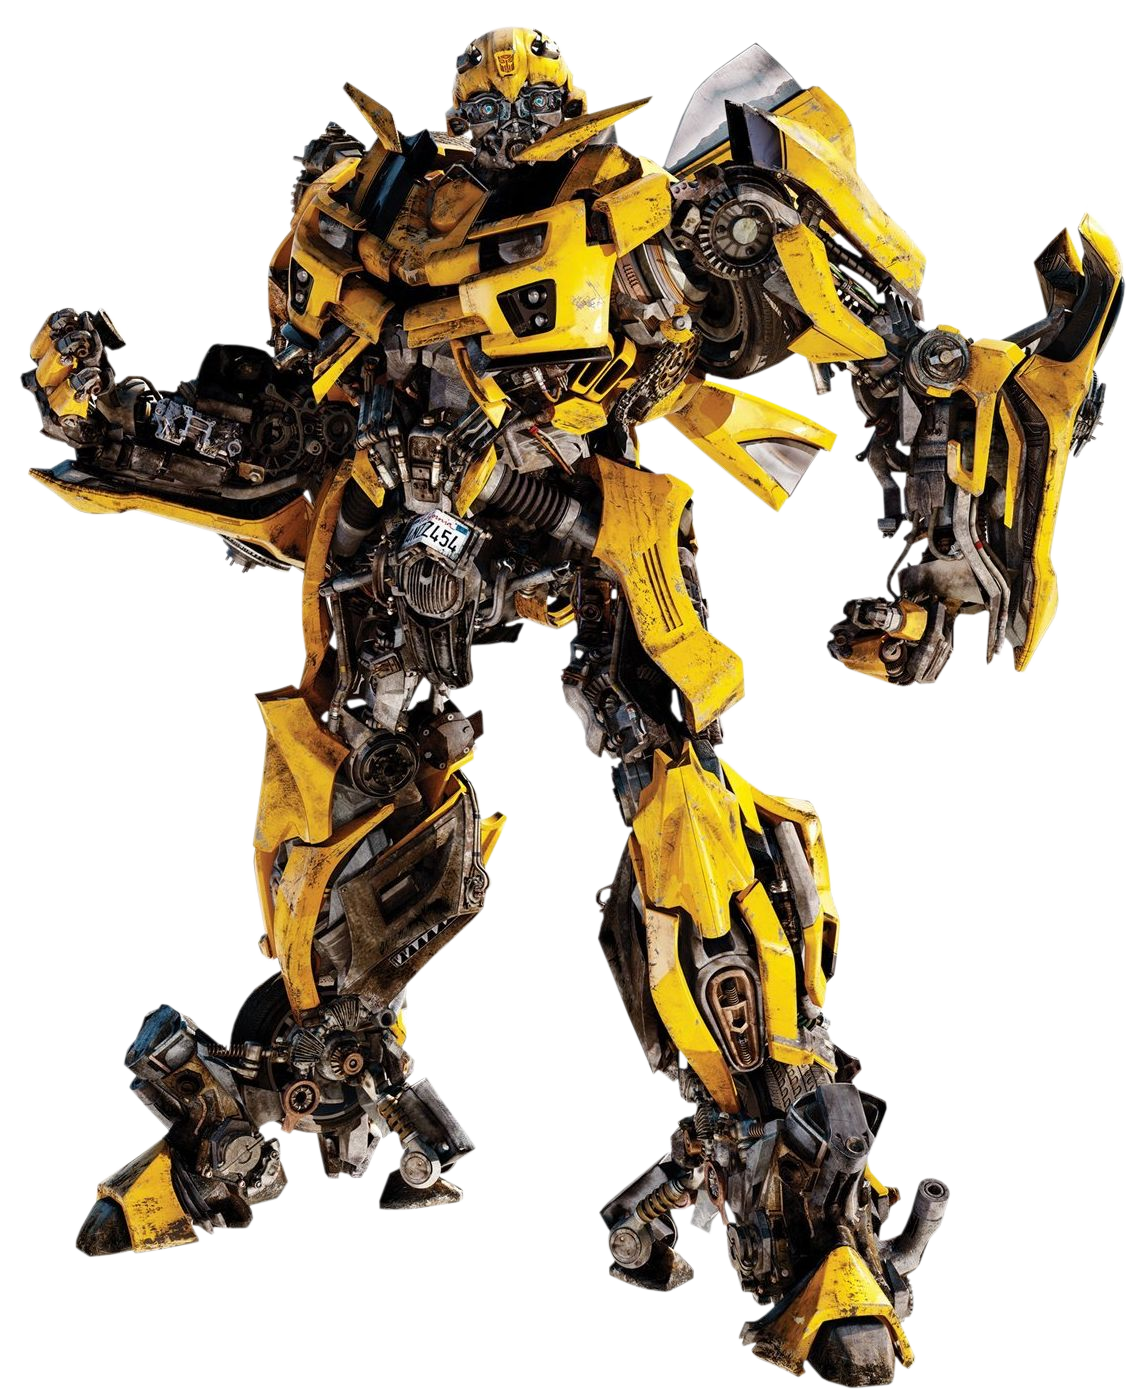 Bumblebee (Transformers Cinematic Universe)